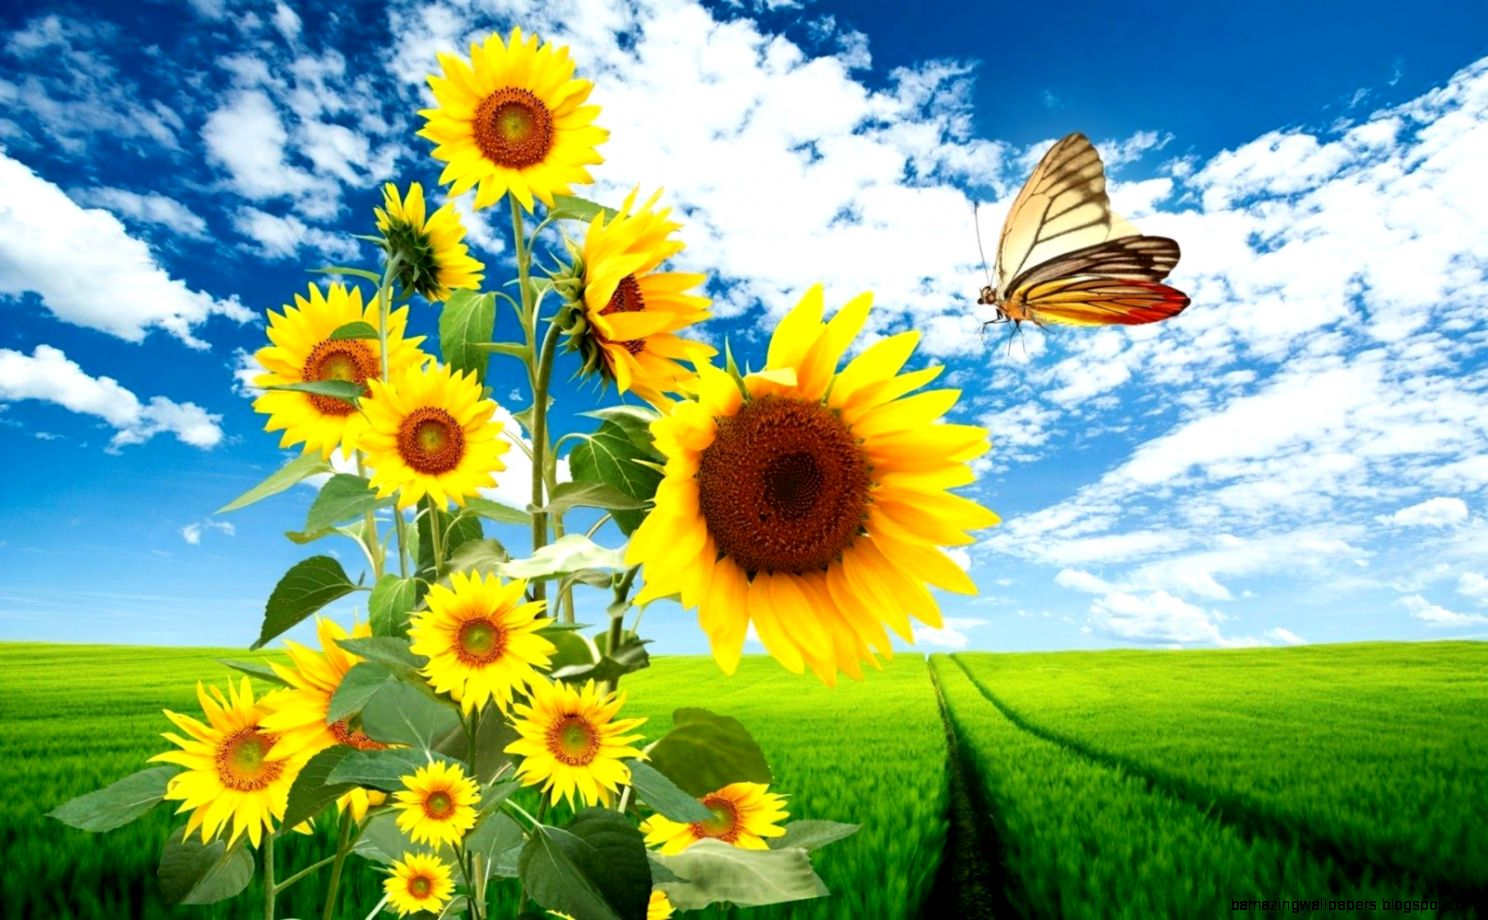 Spring Flowers And Butterflies Wallpaper Amazing Wallpapers